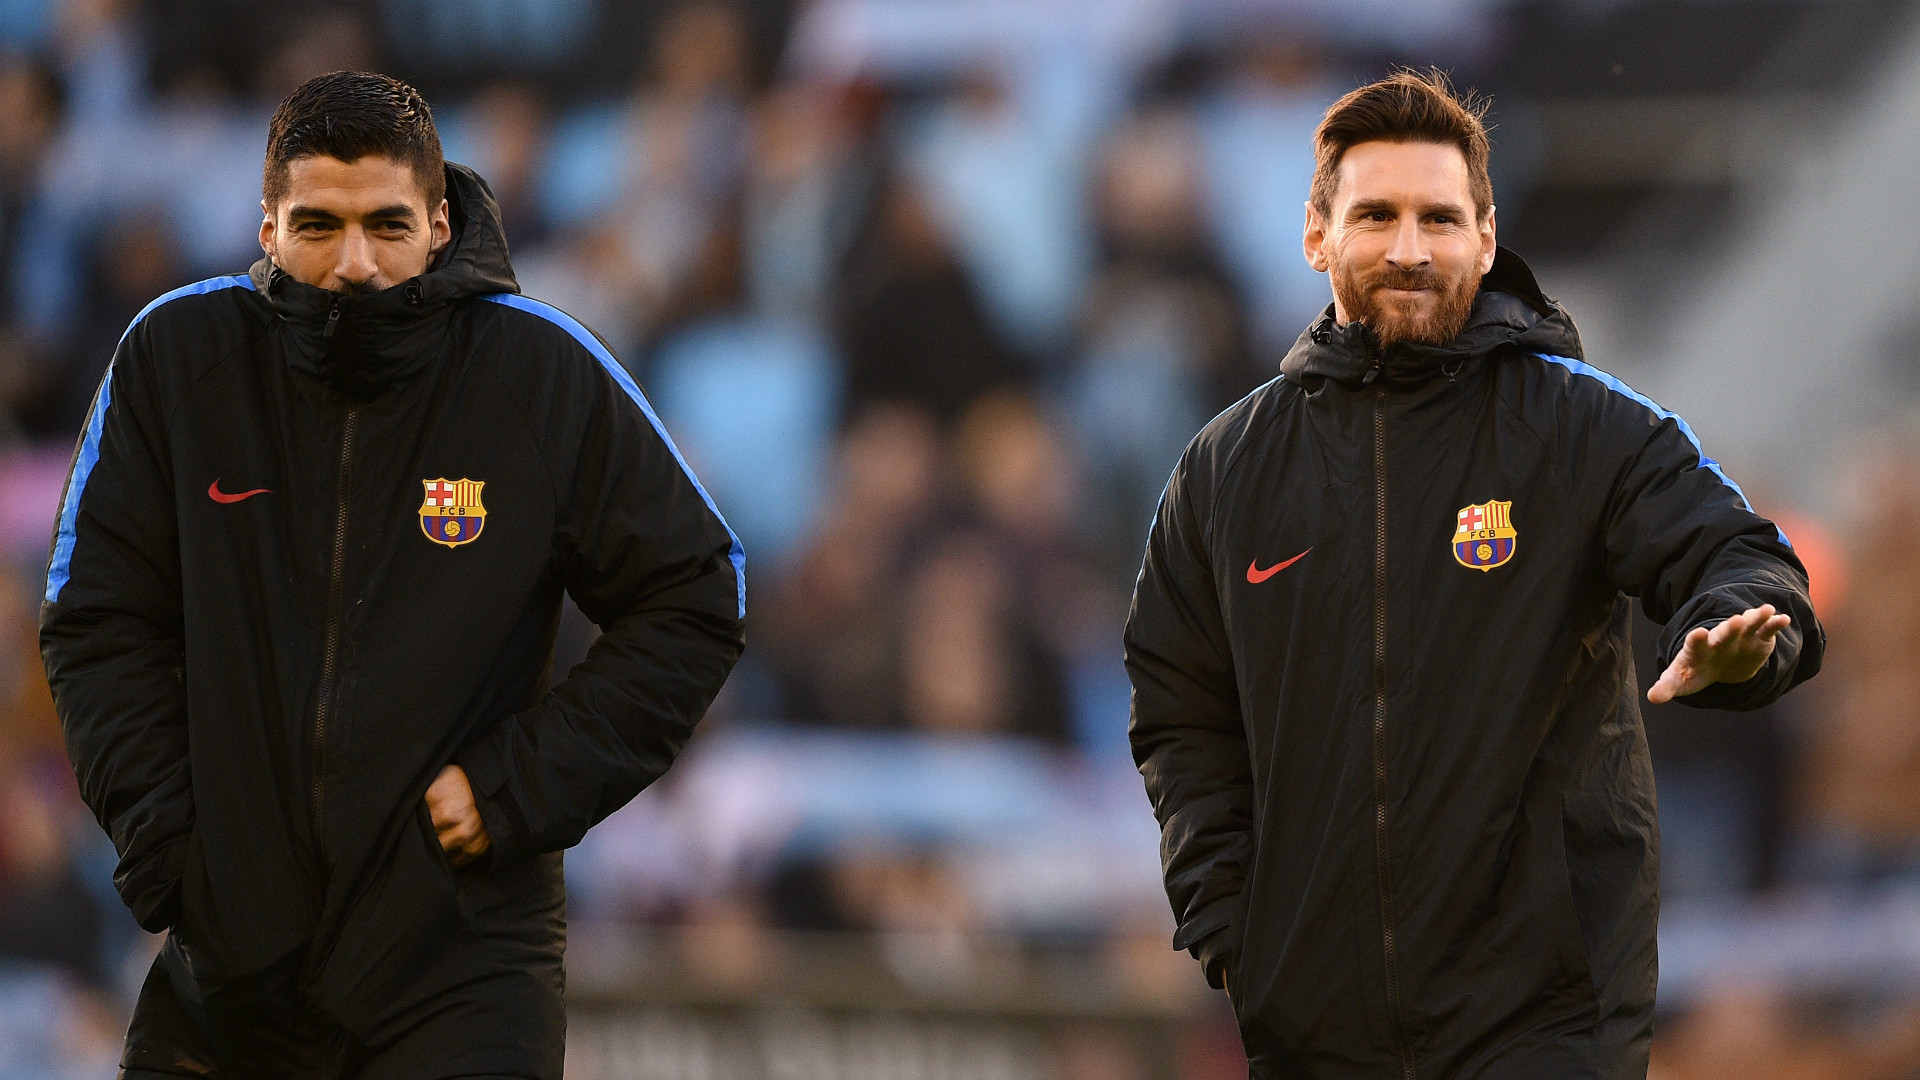 Lionel Messi likely to miss Barcelona's La Liga game against Celta Vigo